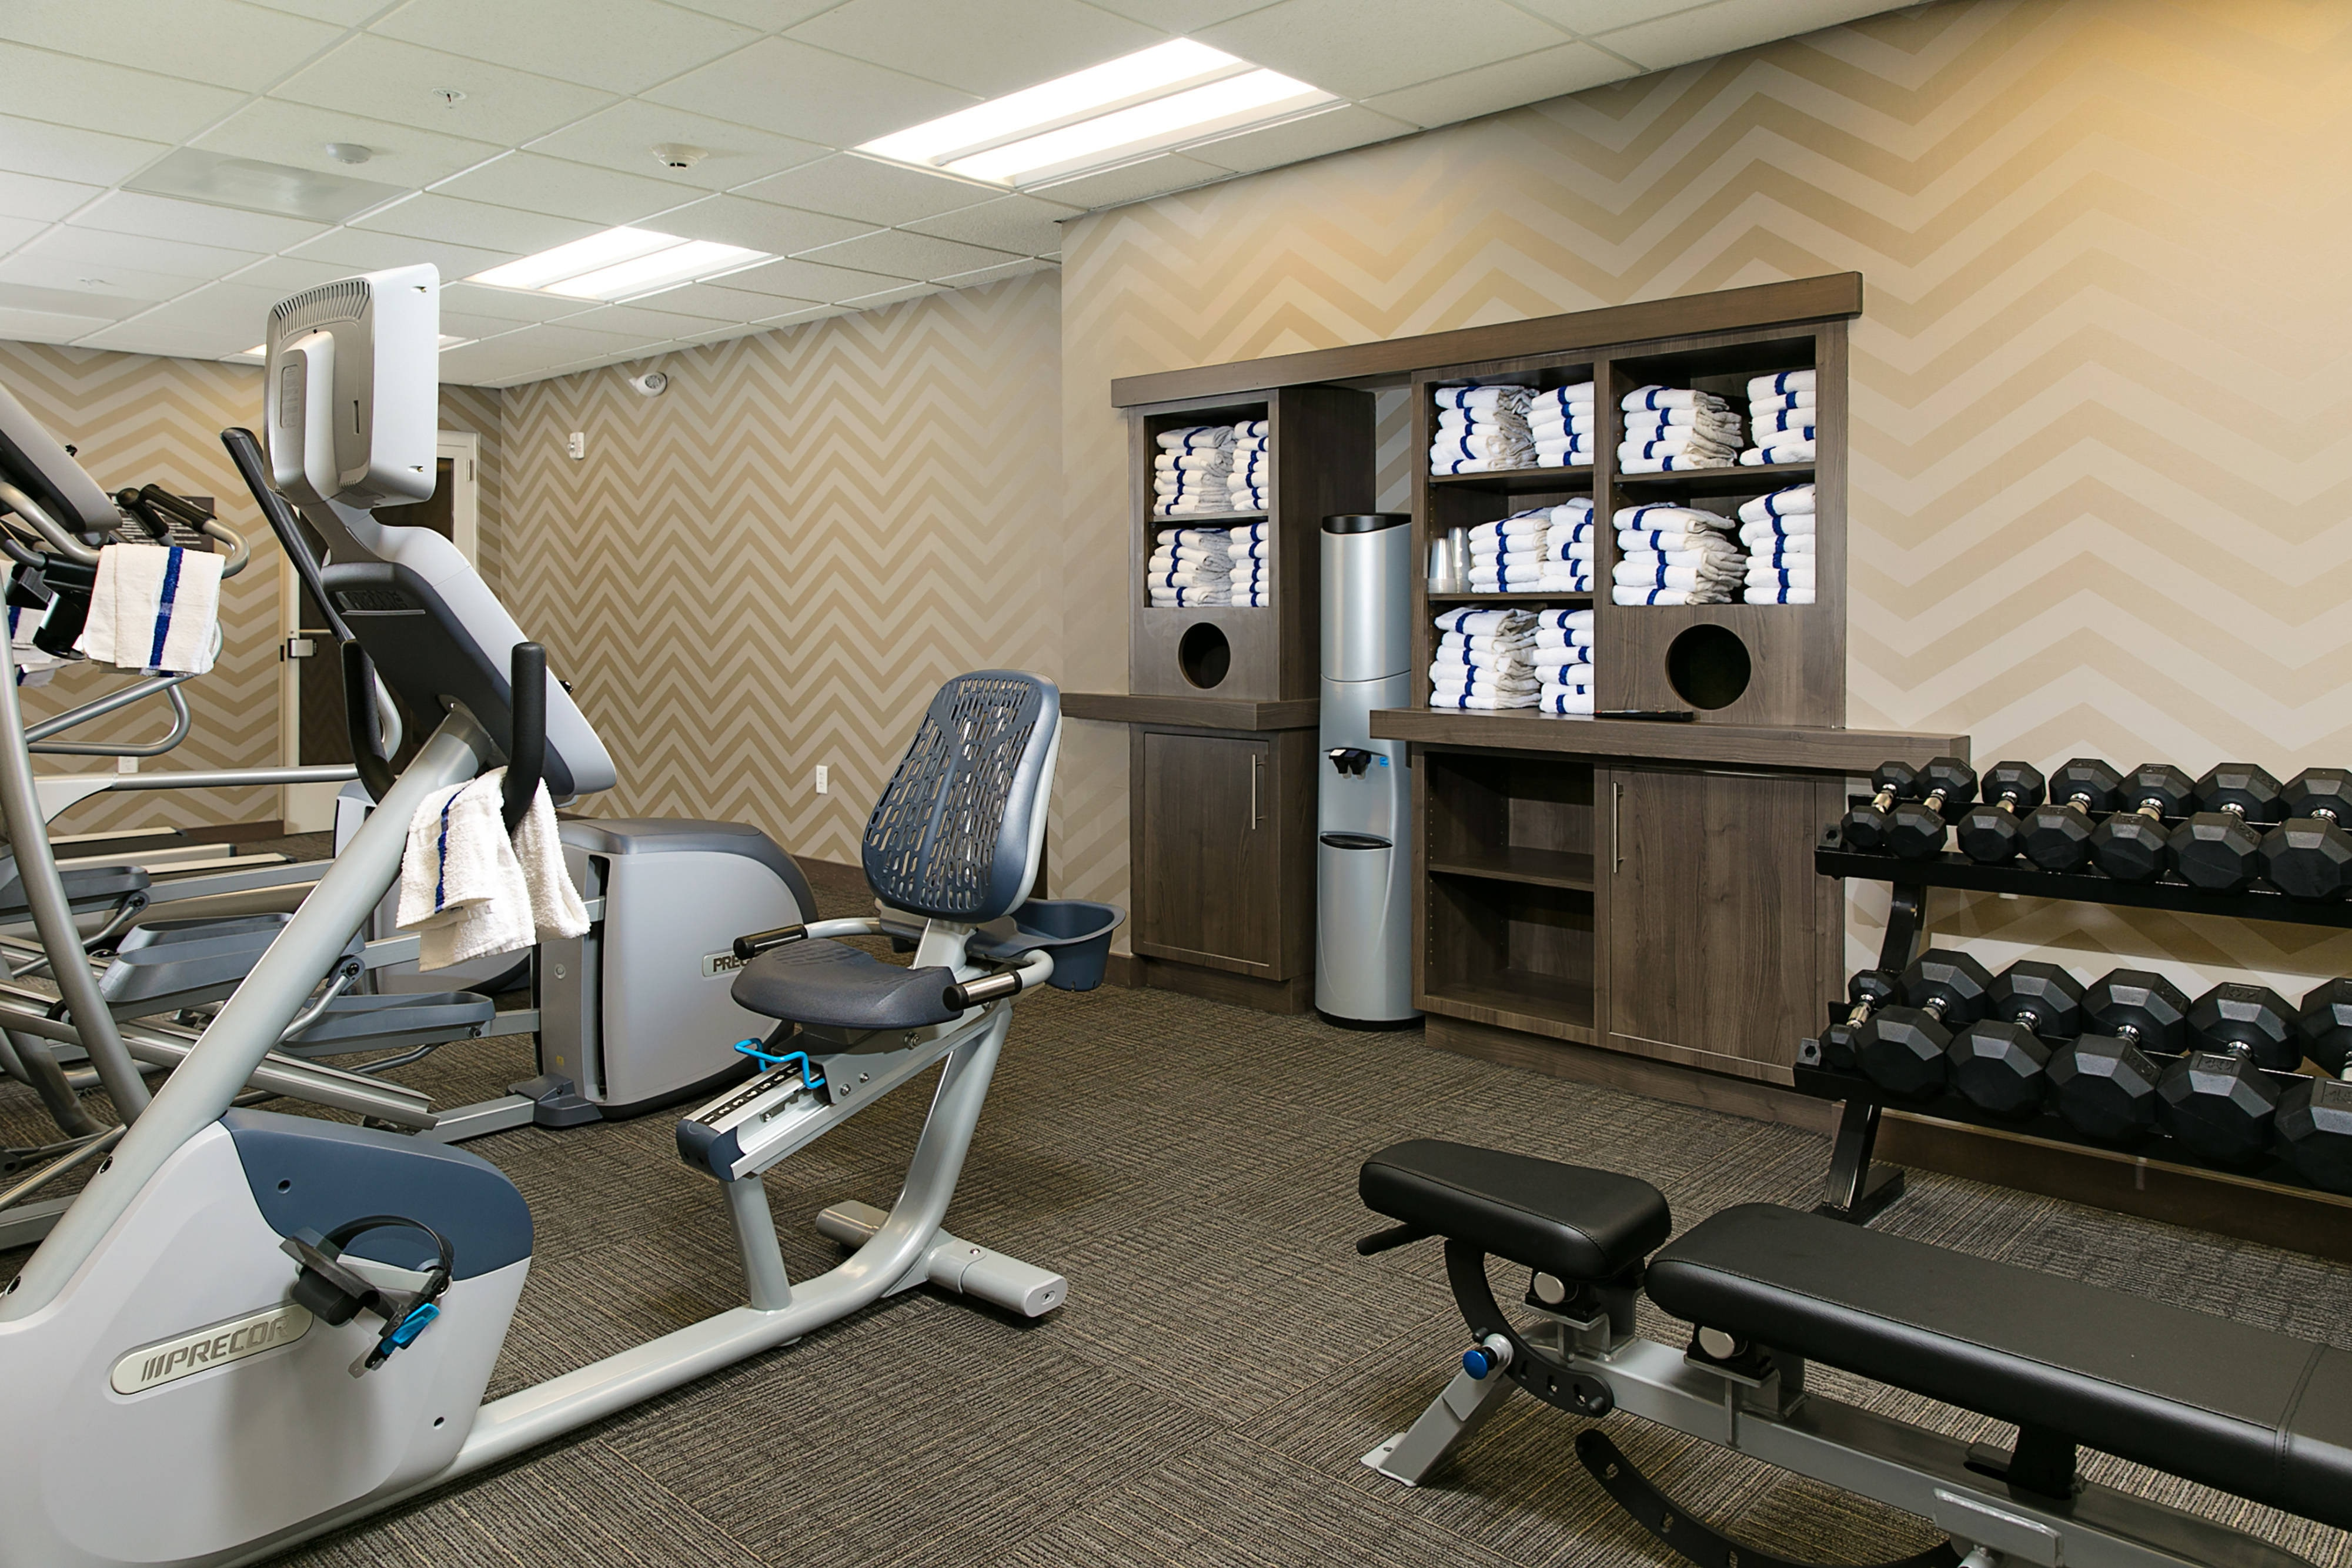 On-site Fitness Center with Weights and Equipment